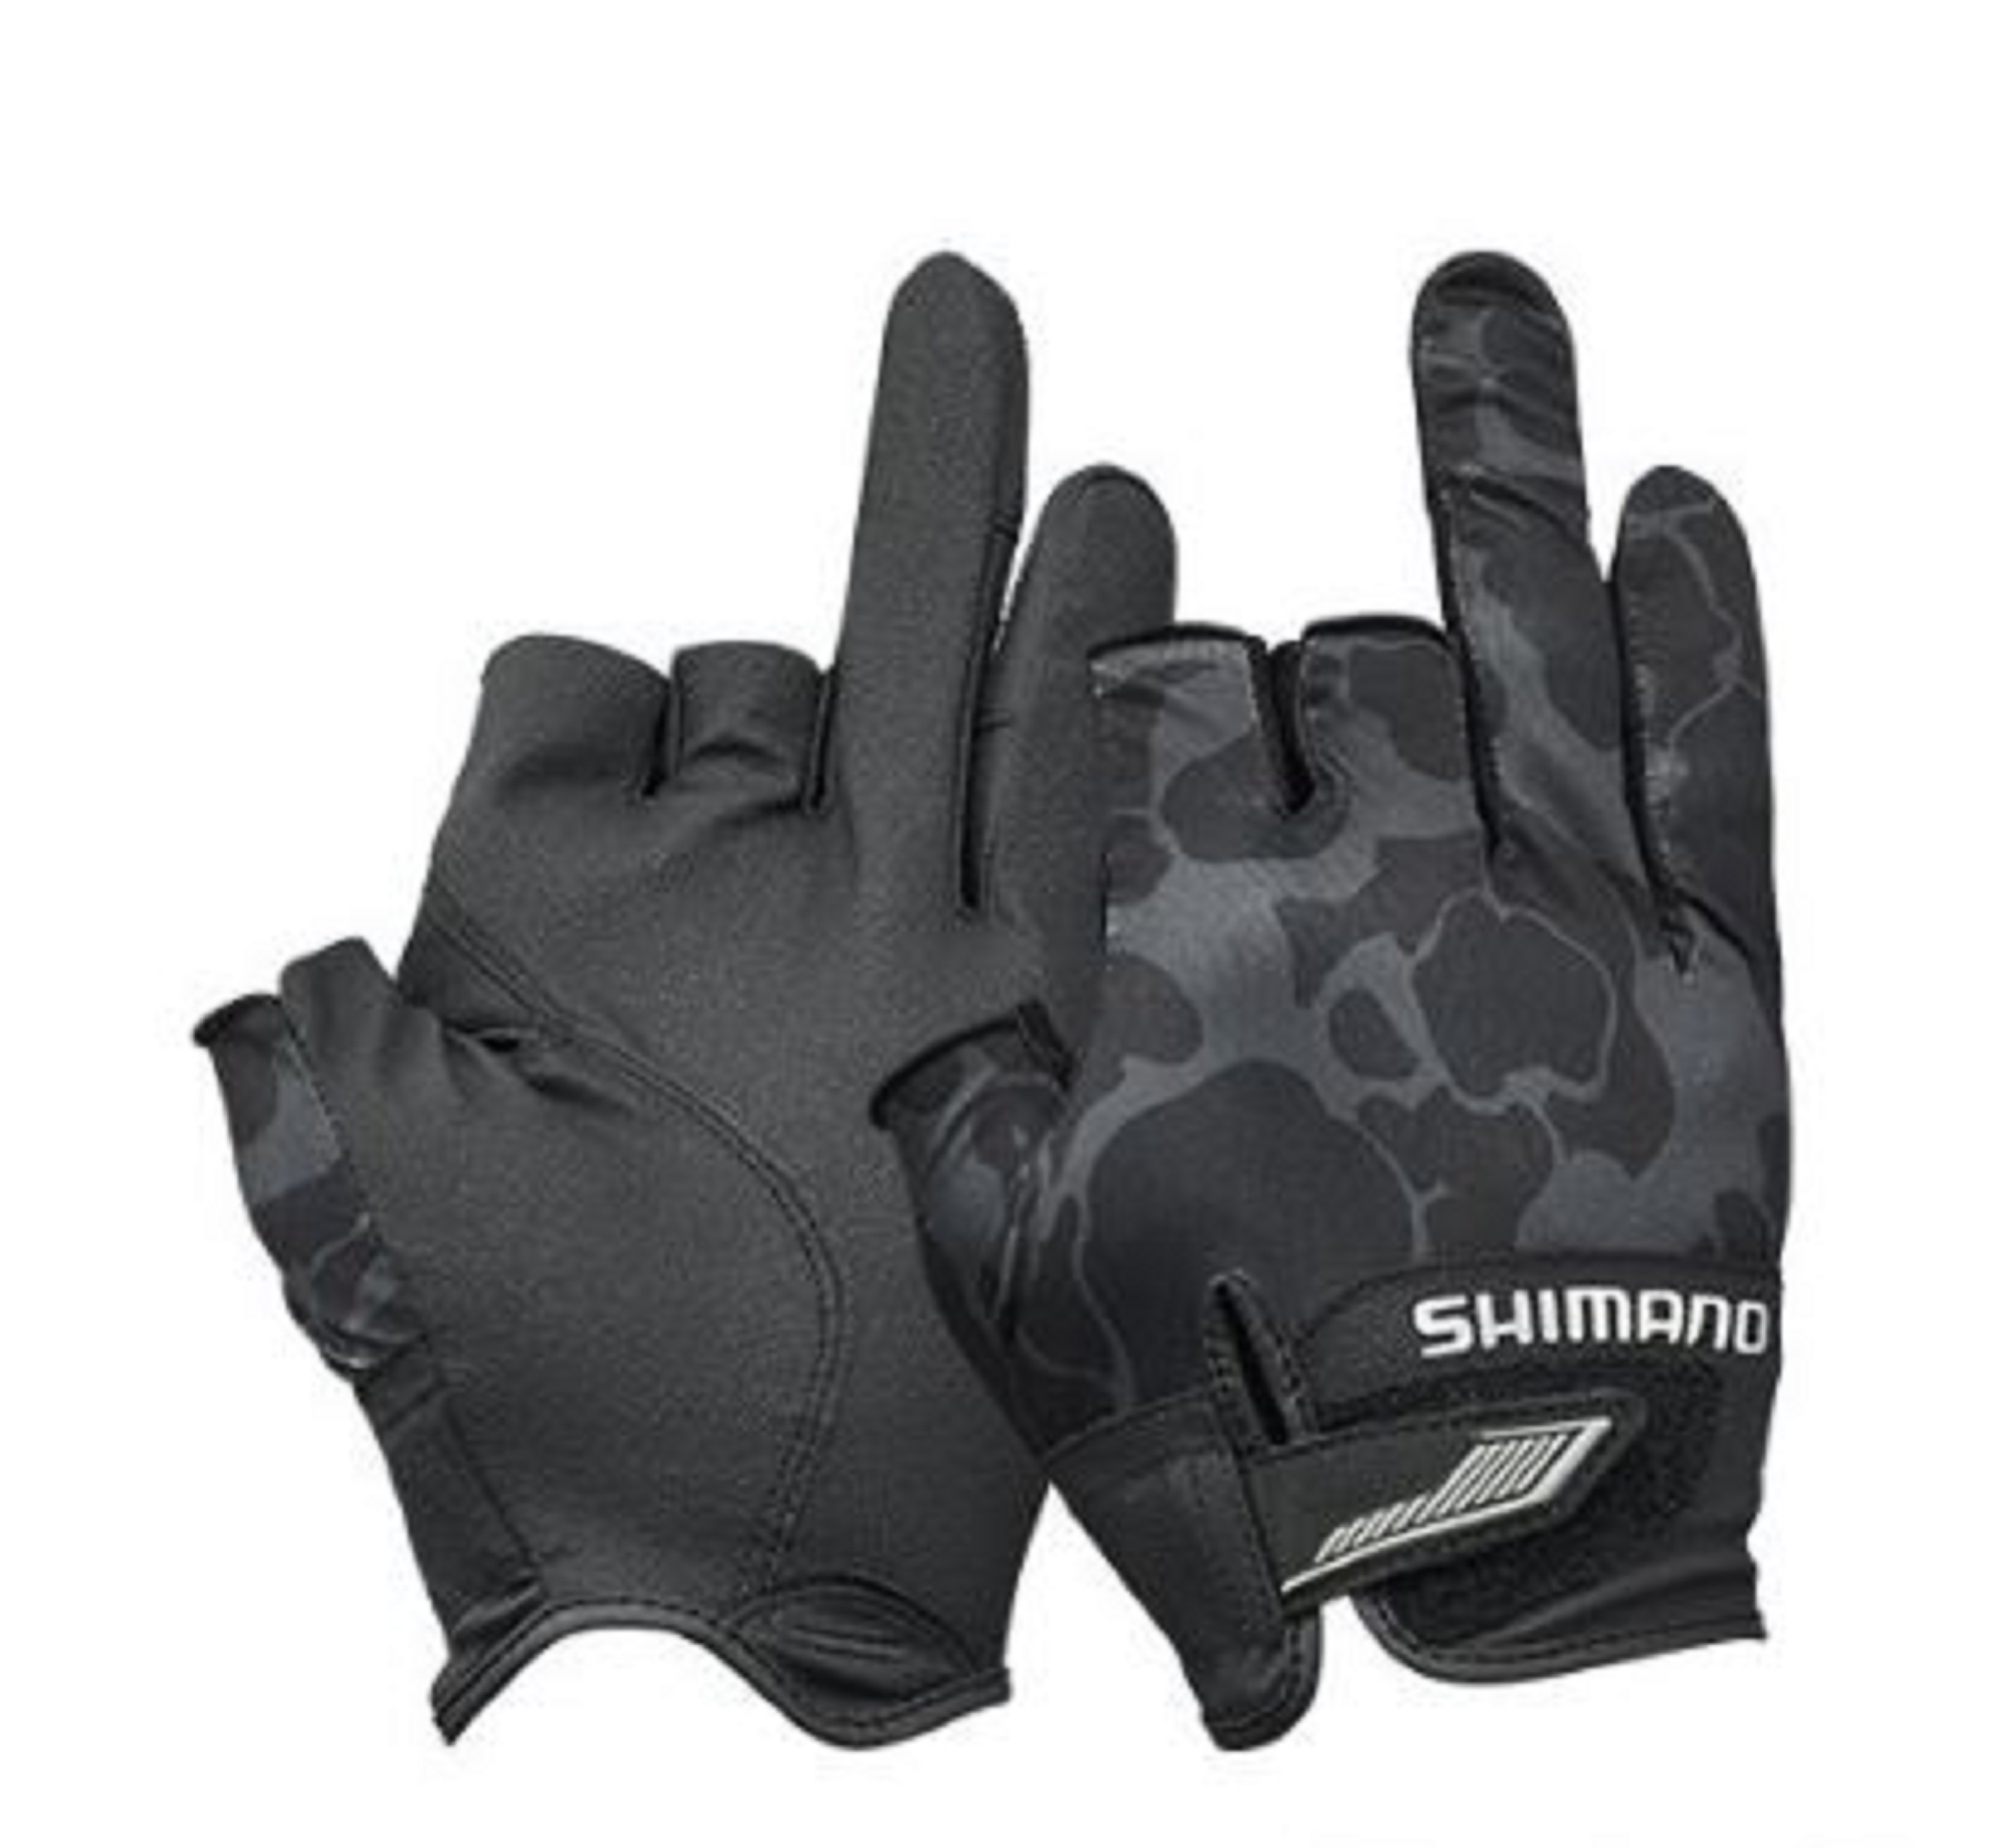 Shimano GL-021S Gloves 3D Casting 3 Fingerless Black Size XL 669483